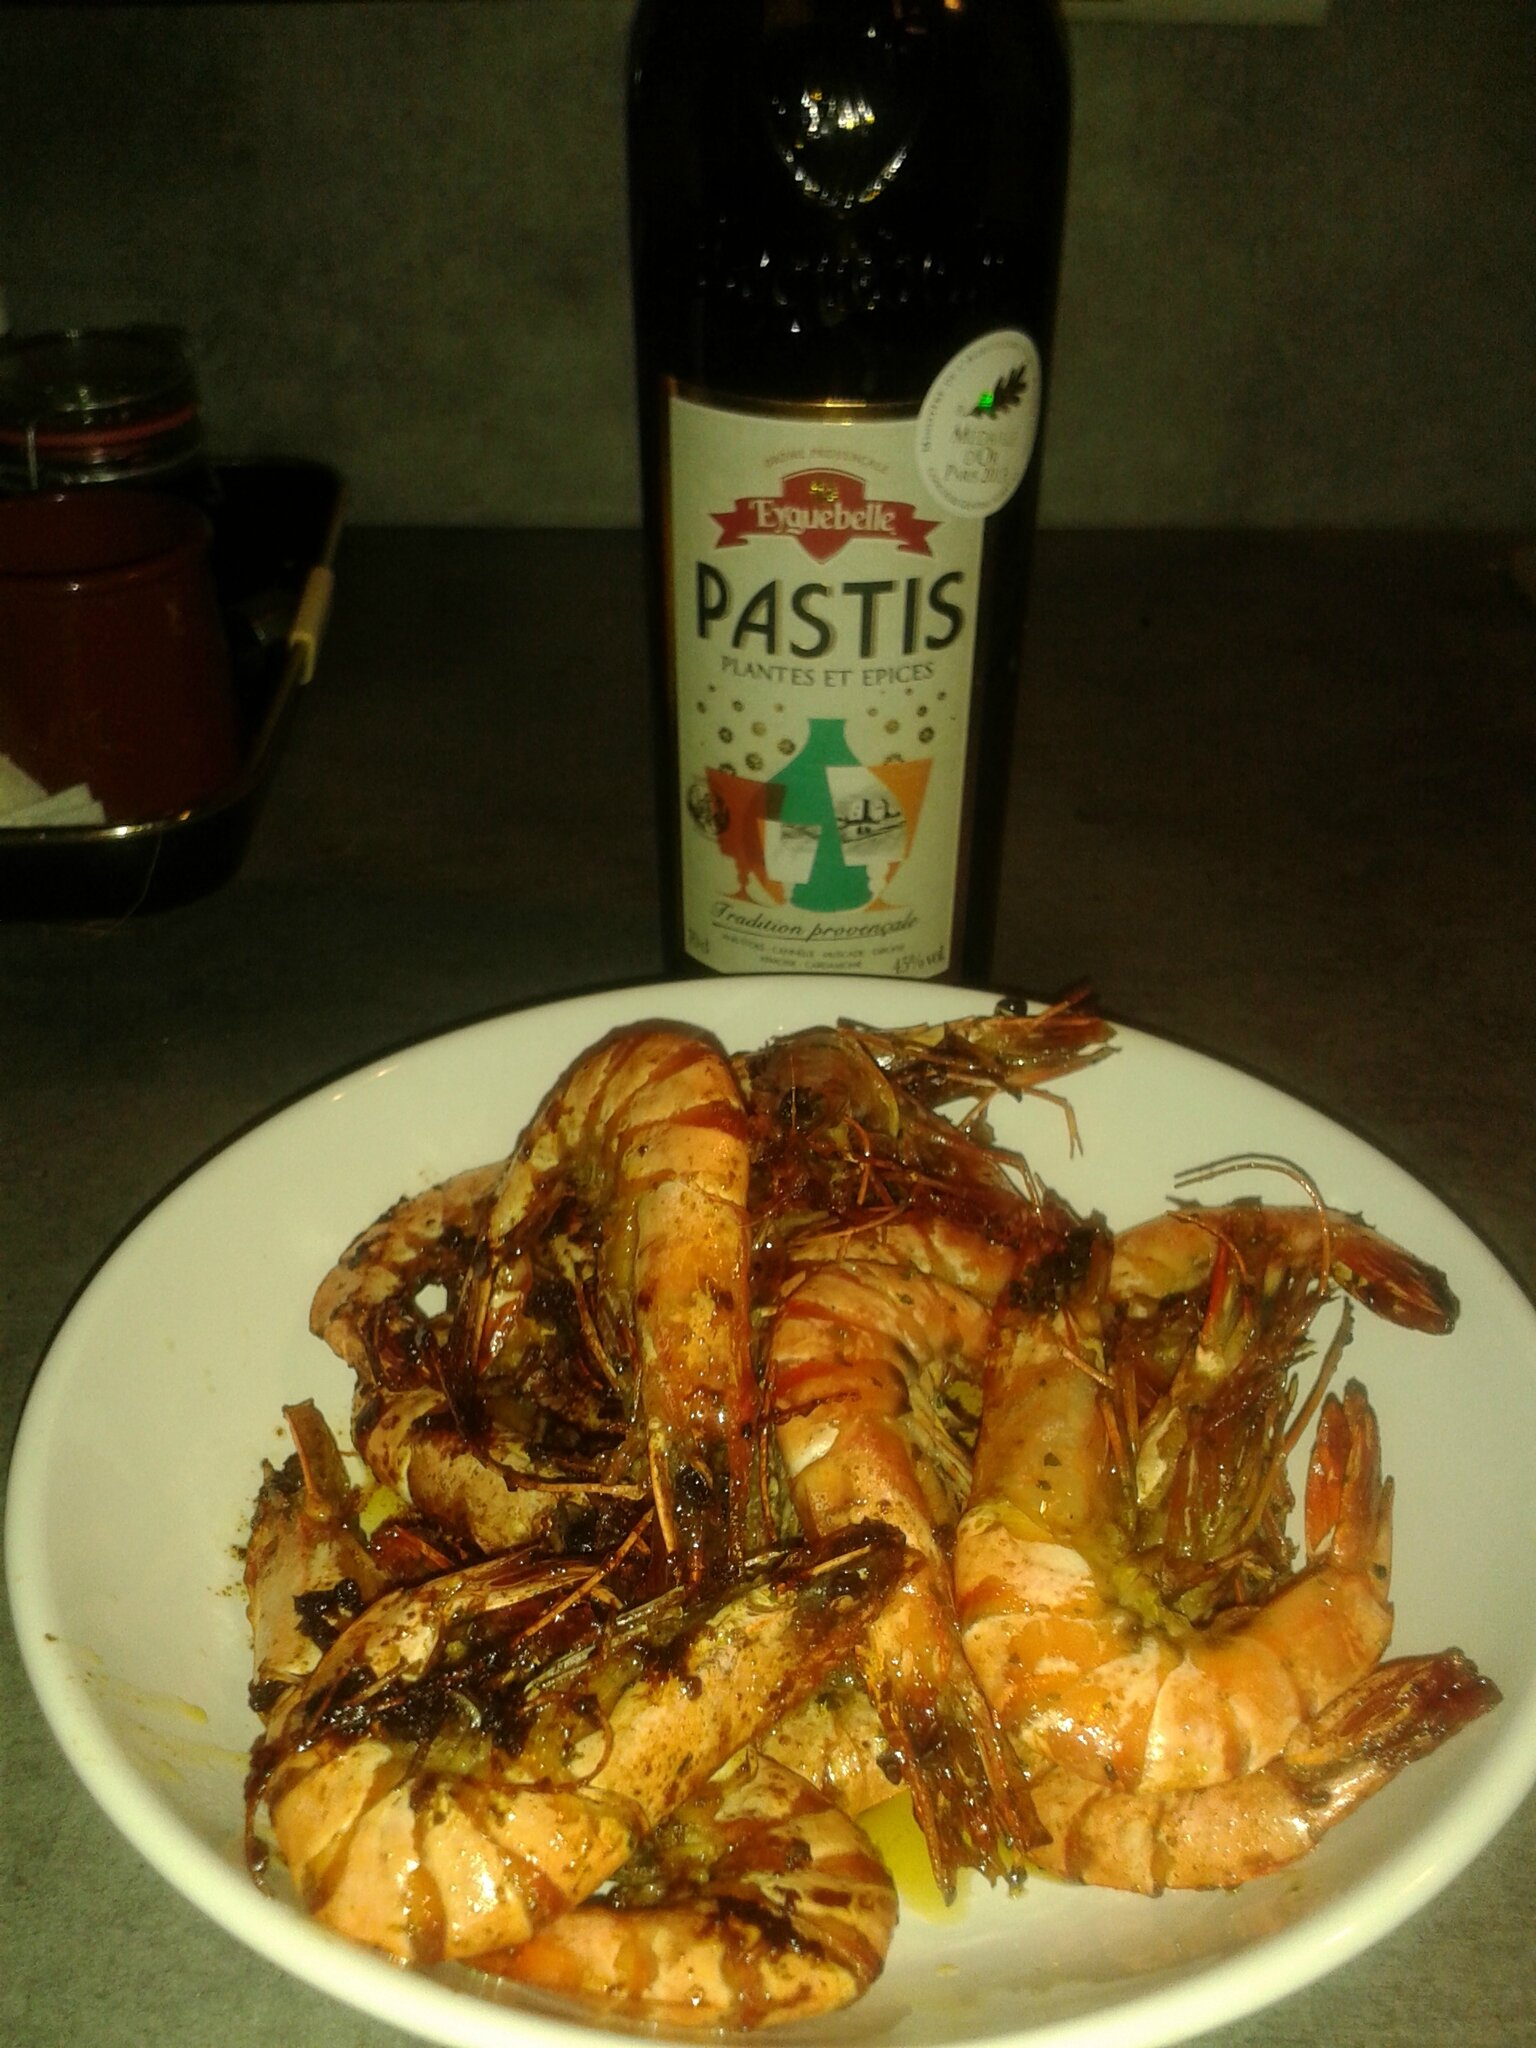 GAMBAS AUX PASTIS EYGUEBELLE